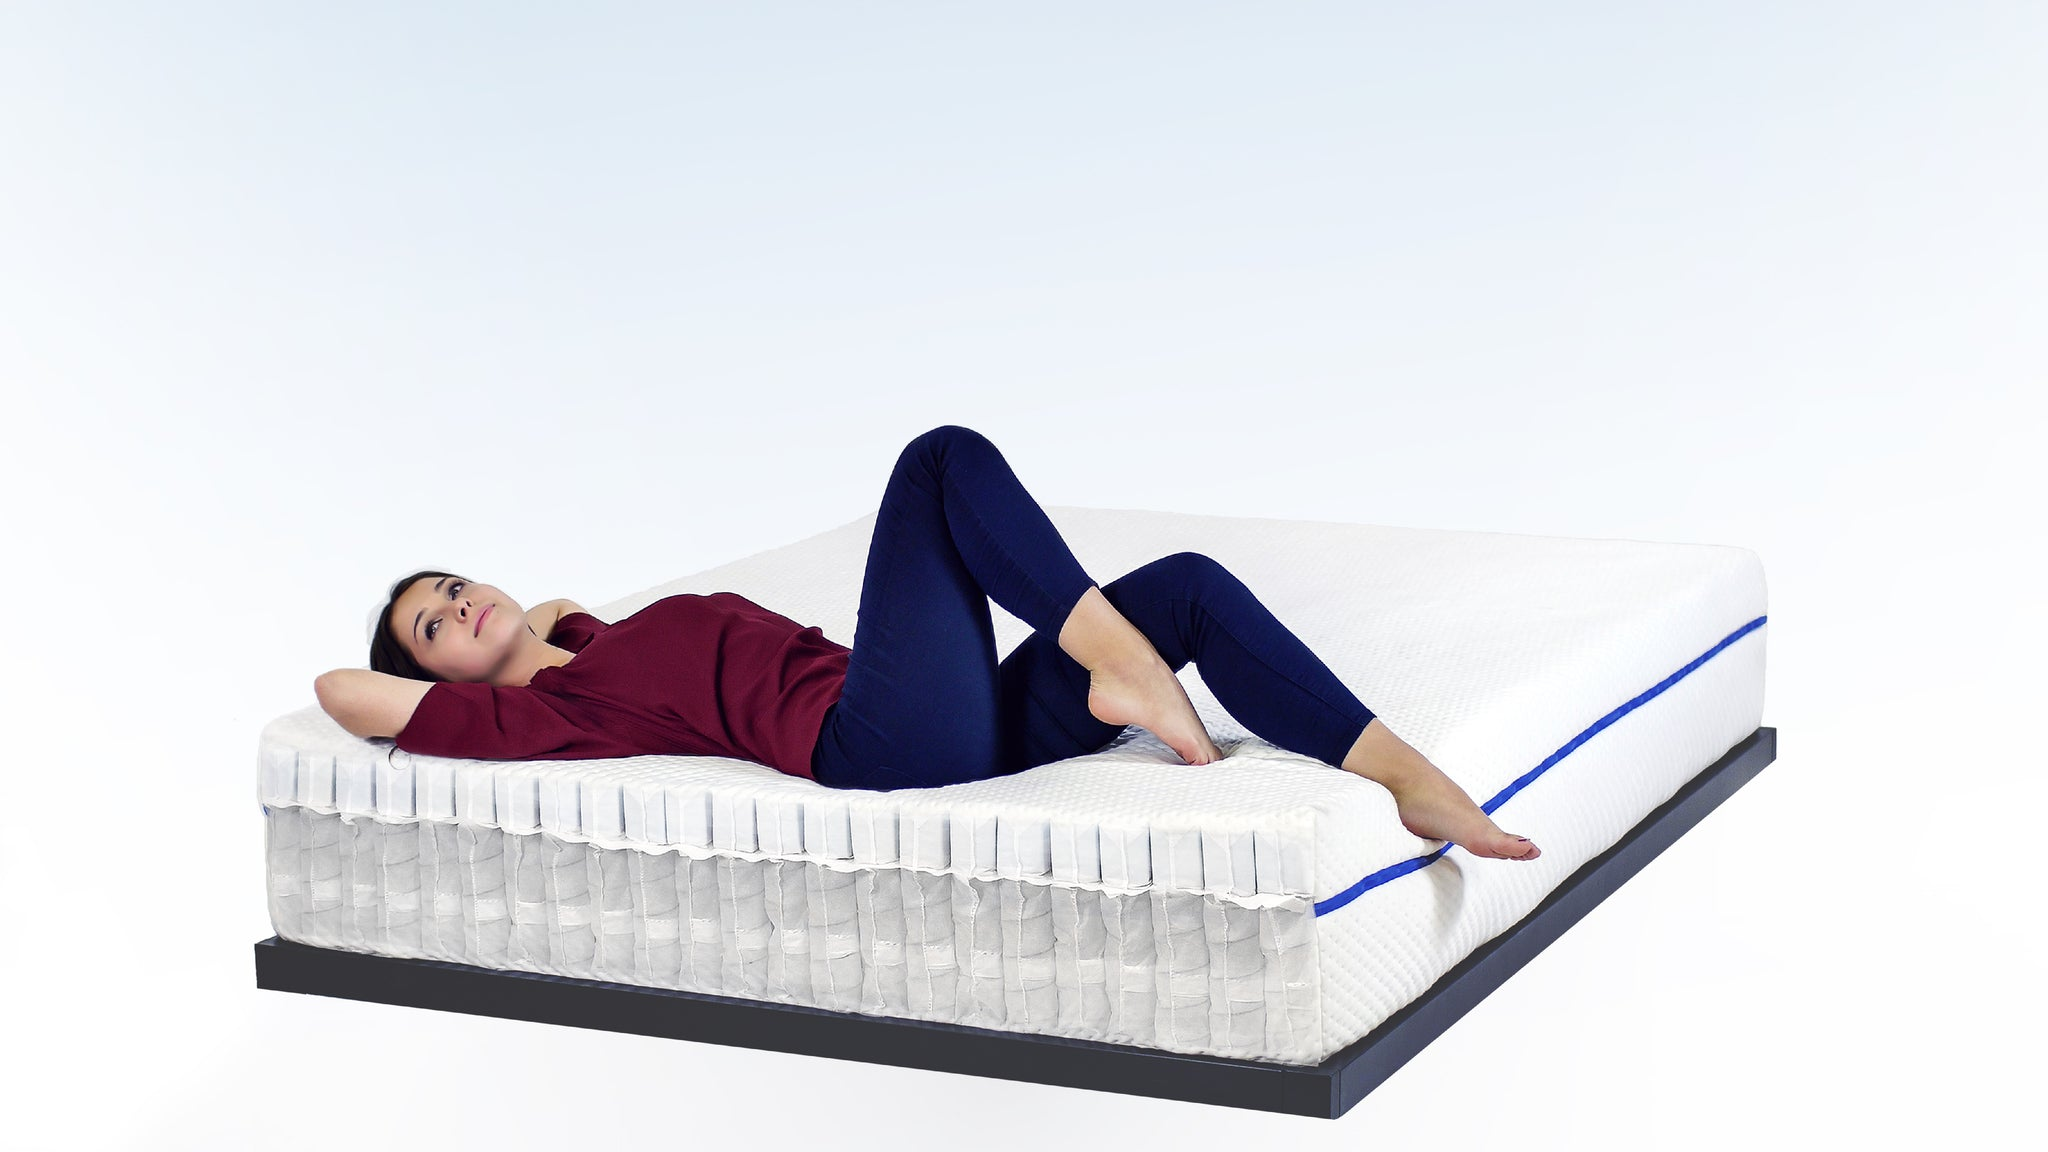 sleepovation 700 tiny mattresses in one for back pain relief